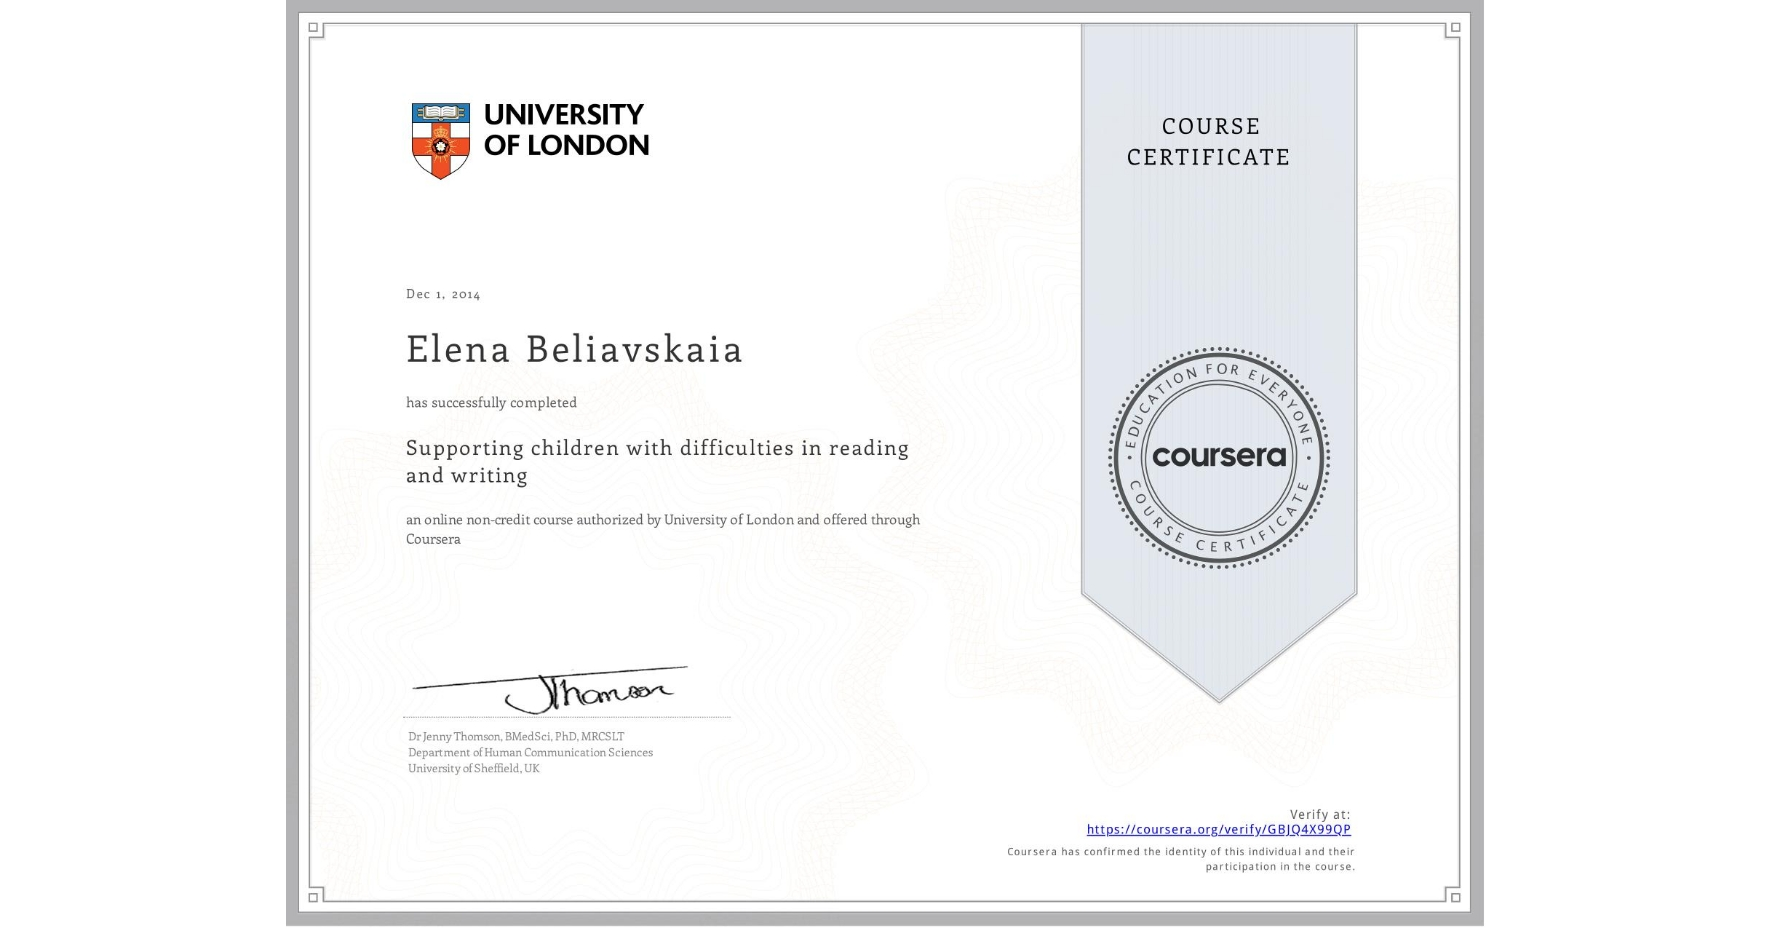 View certificate for Elena Beliavskaia, Supporting children with difficulties in reading and writing, an online non-credit course authorized by University of London and offered through Coursera